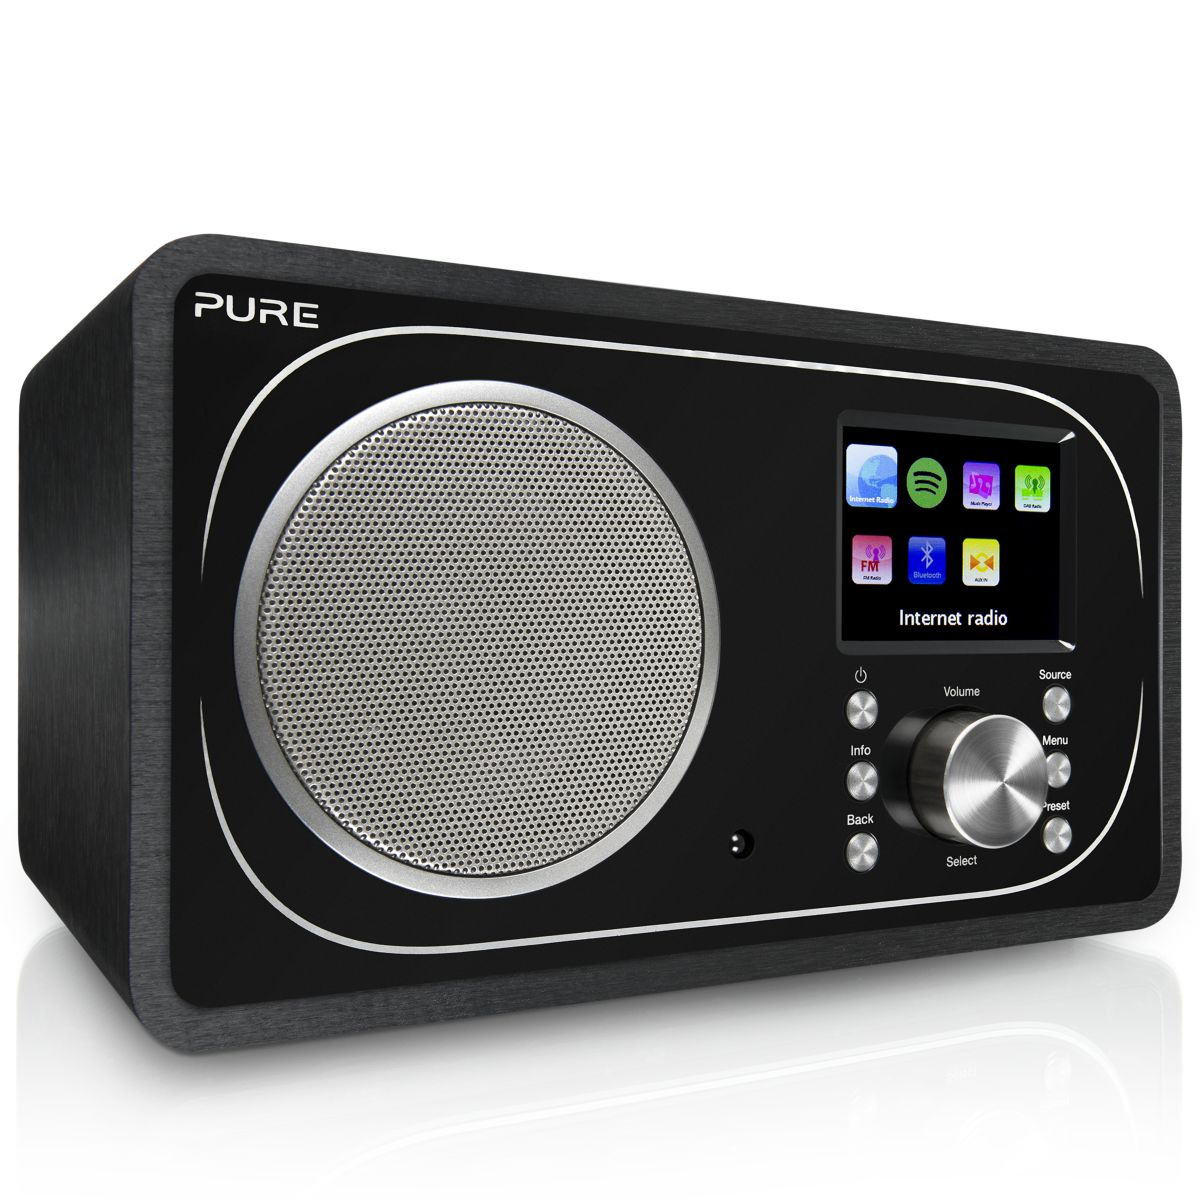 Radio internet PURE Evoke F3